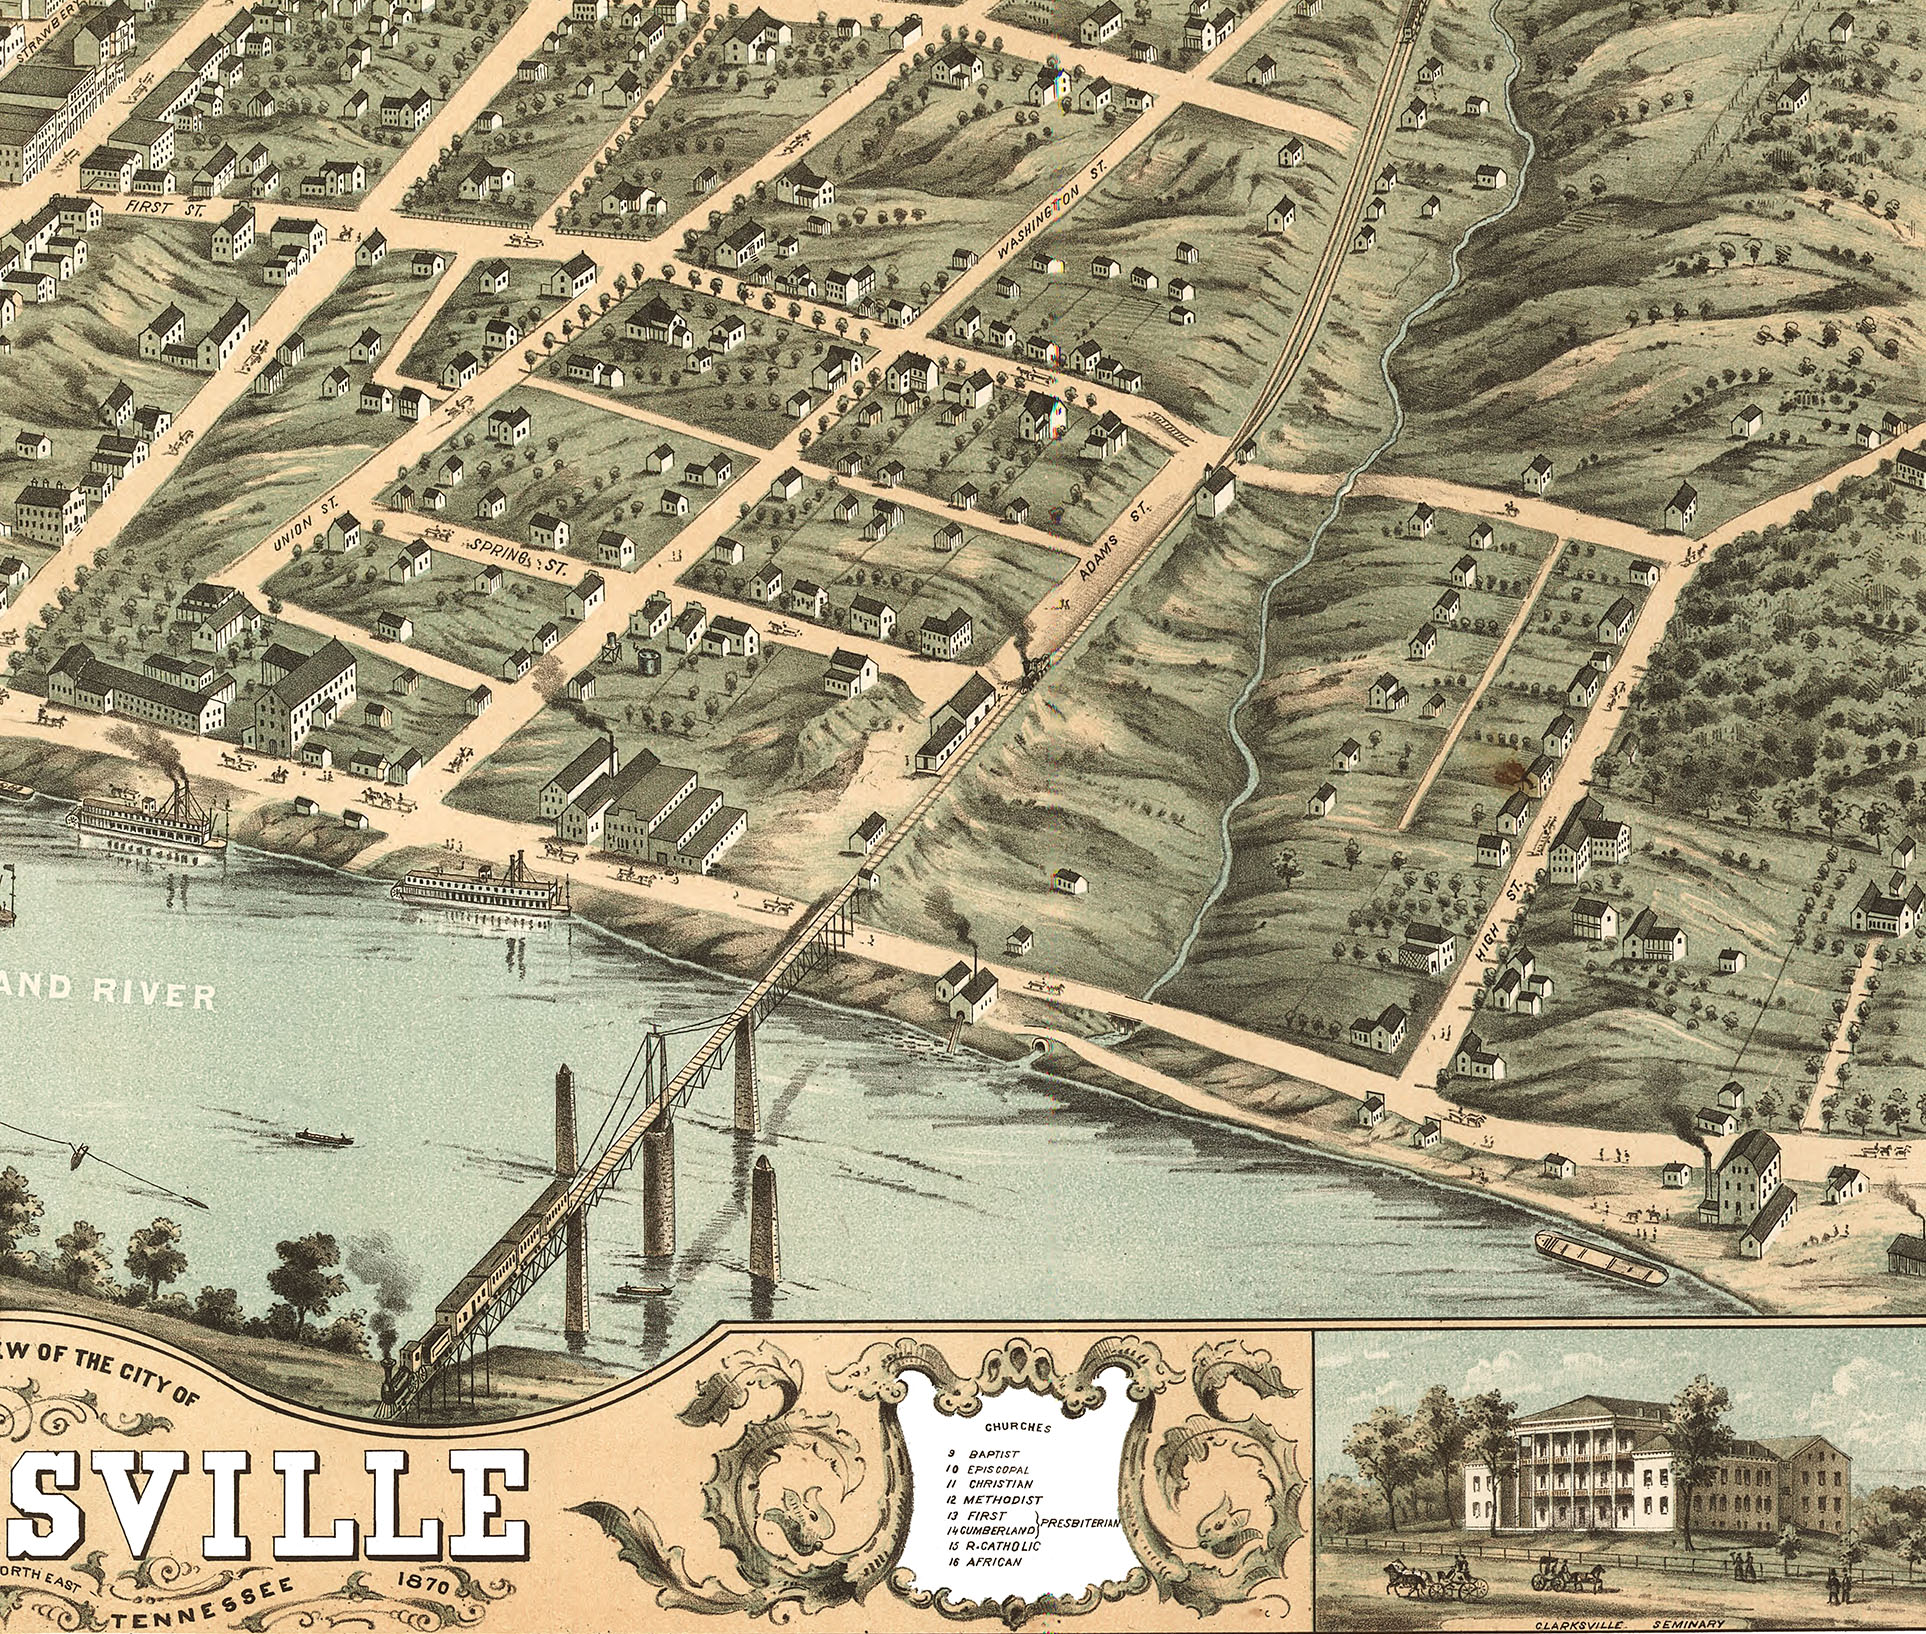 Clarksville, Tennessee in 1870 - Bird's Eye View, Map, Aerial, Panorama, on map of grainger county tn, map of berry hill tn, map of tennessee, map of frayser tn, all map of tn, map of lobelville tn, map of petersburg tn, map of fall branch tn, map of johnsonville tn, map of millersville tn, map of clarkrange tn, map of pleasant view tn, map of arrington tn, map of adams tn, map of jefferson co tn, map of ridgetop tn, map of tallassee tn, map of madison co tn, map of rivergate tn, map of mountain home tn,